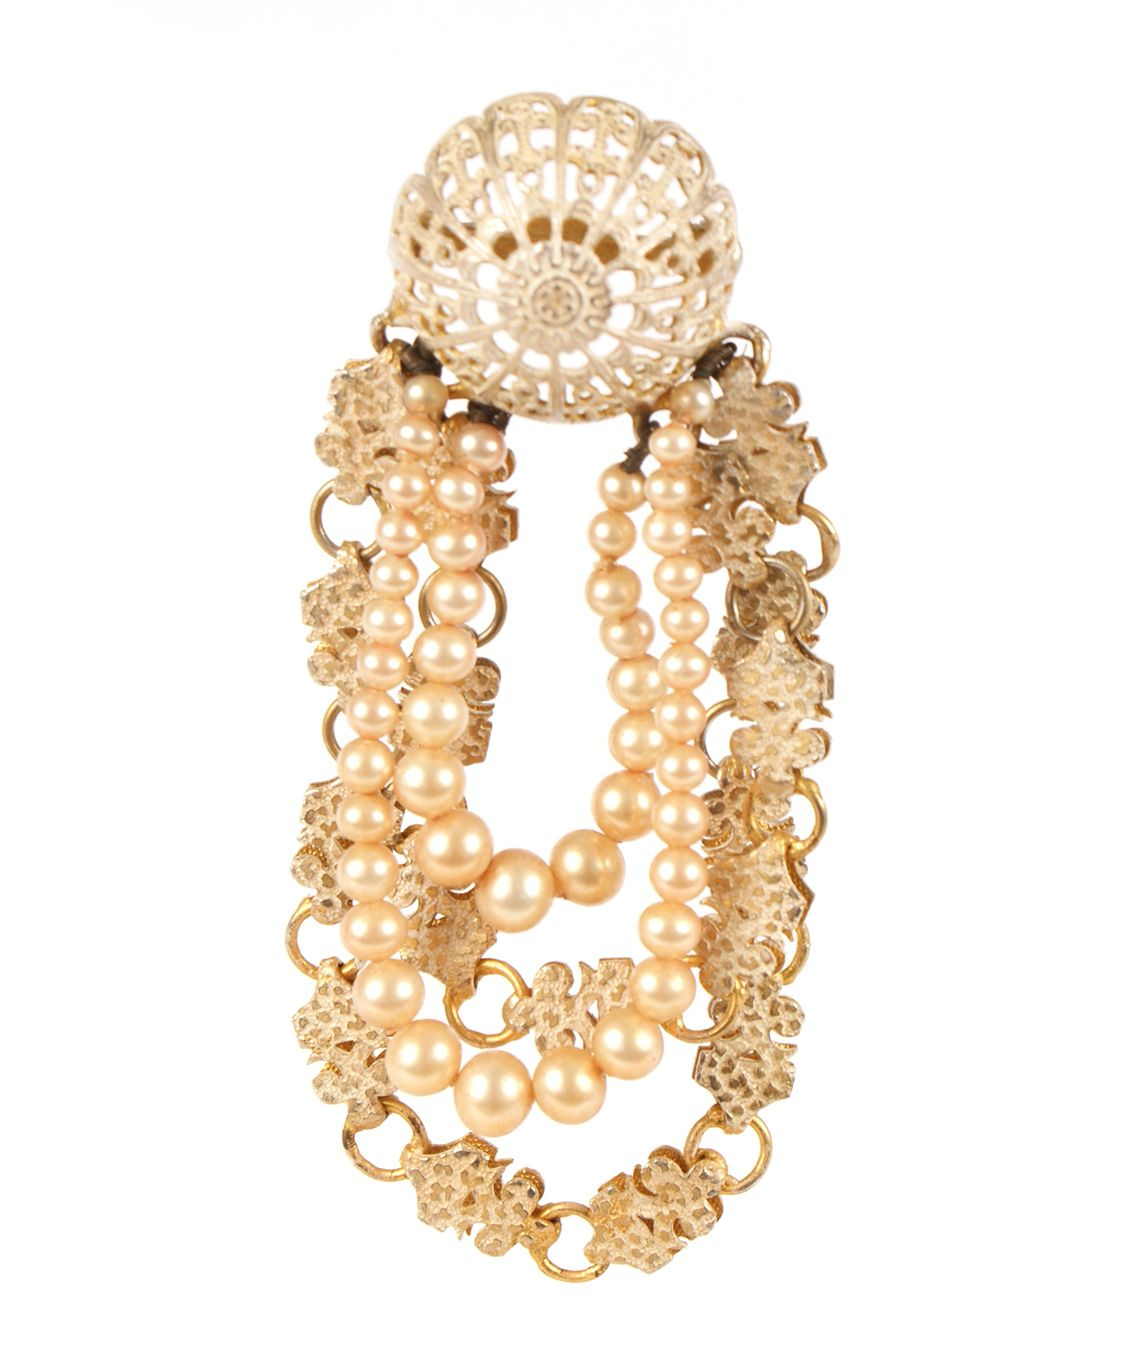 Mitchel Maer for Christian Dior pearl brooch pin